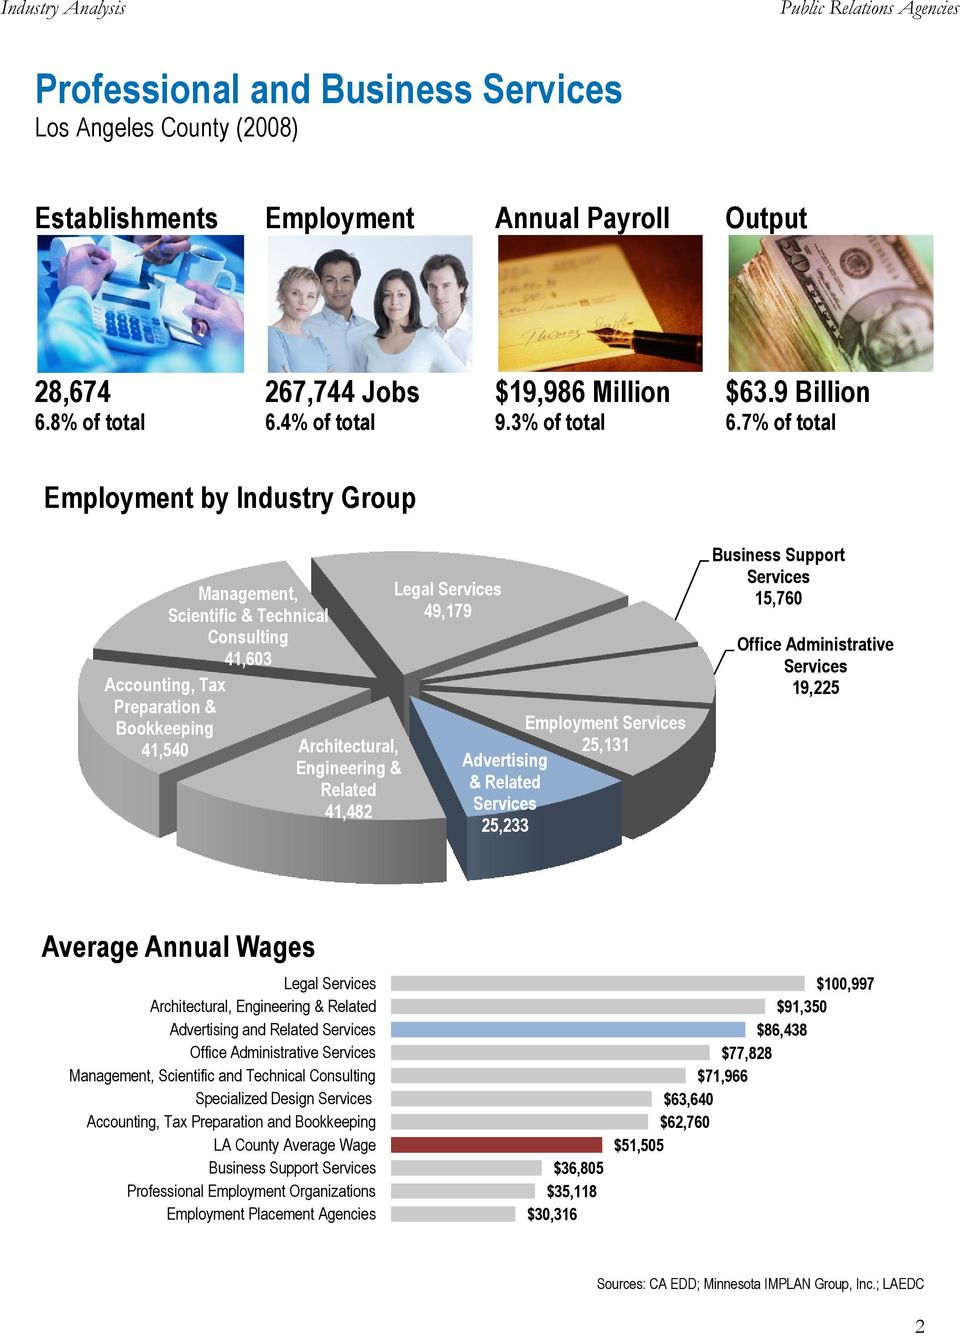 7% of total Employment by Industry Group Management, Scientific & Technical Consulting 41,603 Accounting, Tax Preparation & Bookkeeping 41,540 Architectural, Engineering & Related 41,482 Legal